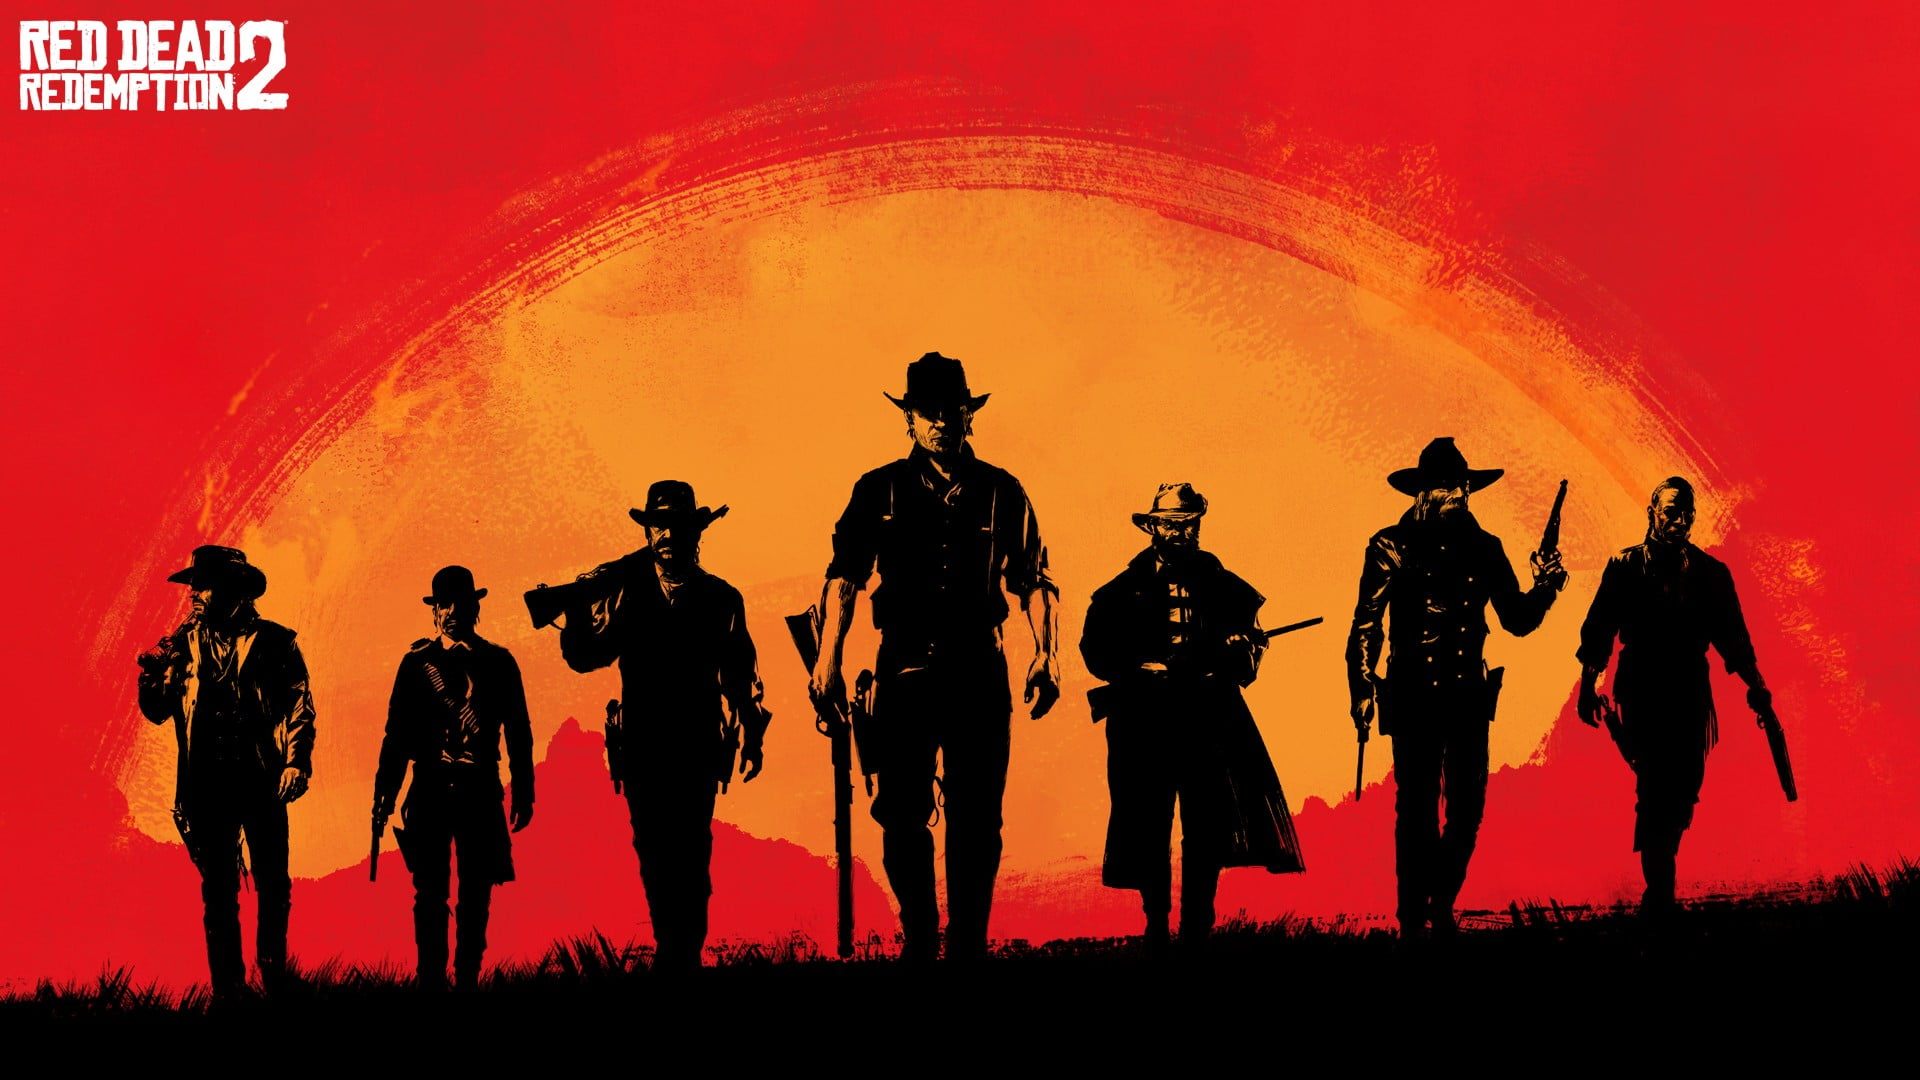 Rockstar News Red Dead Redemption 2 , HD Wallpaper & Backgrounds